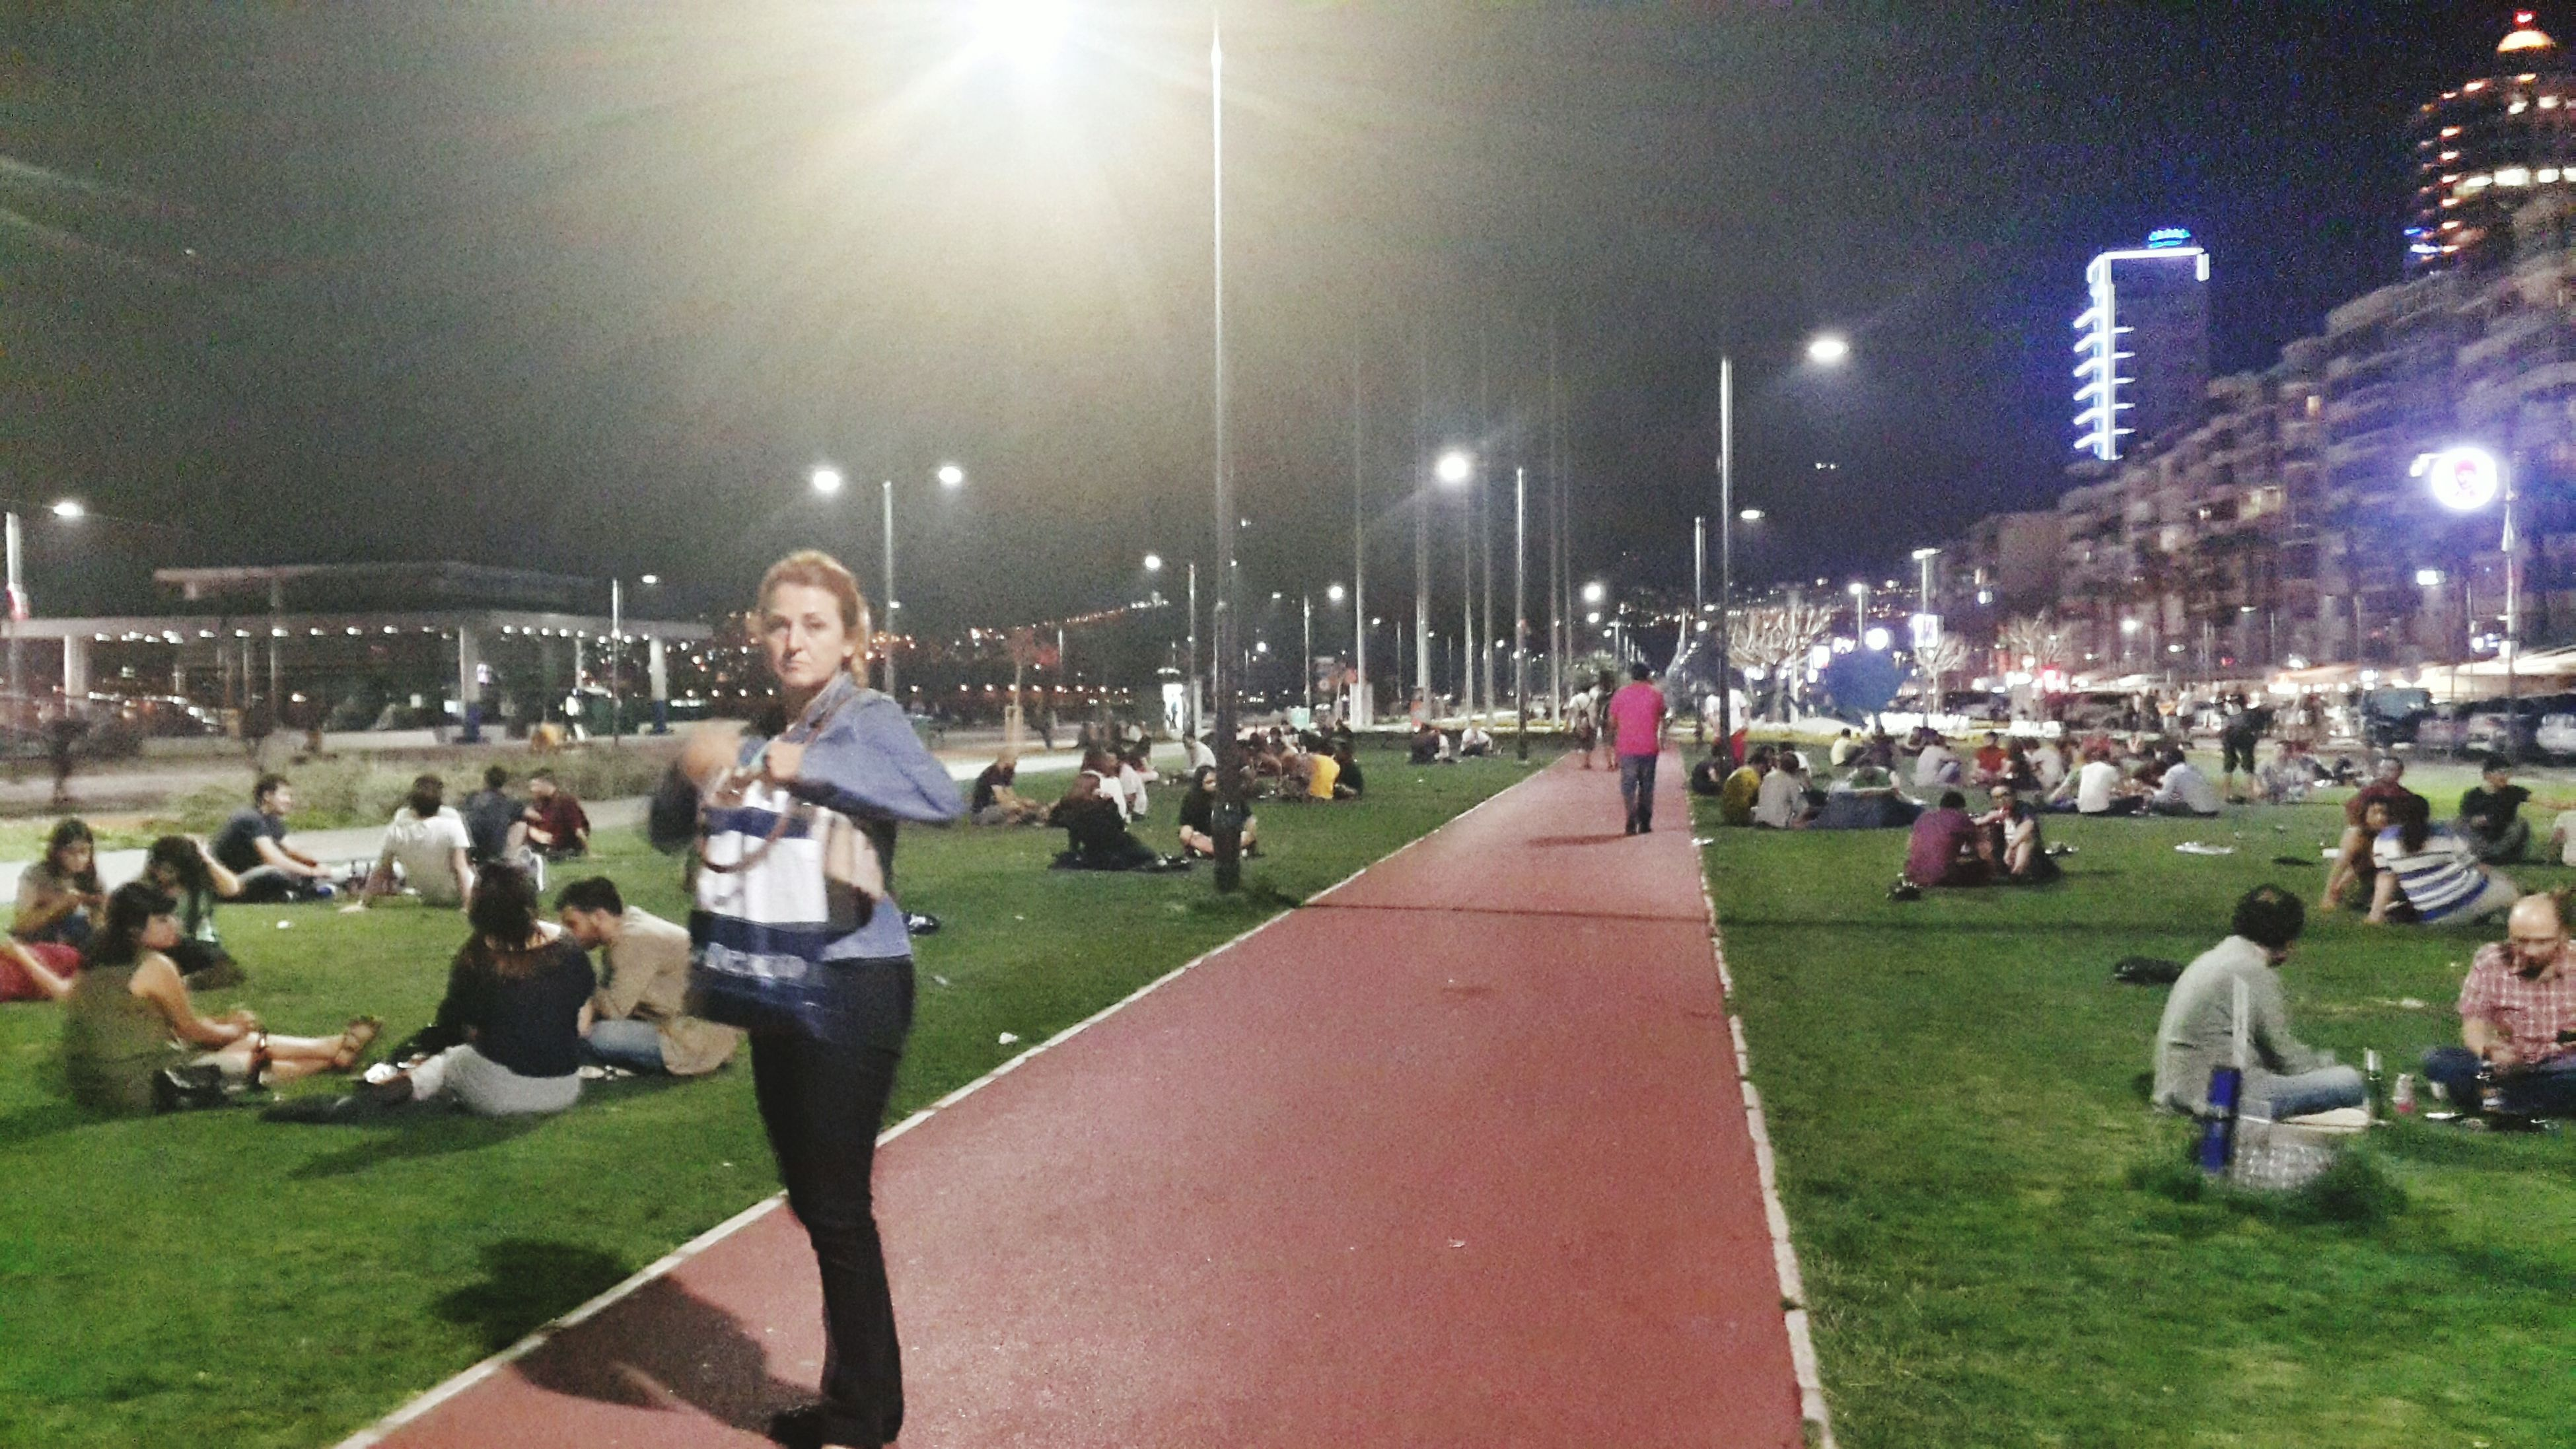 large group of people, grass, men, person, lifestyles, leisure activity, park - man made space, sport, lawn, city life, street light, crowd, mixed age range, sitting, city, night, outdoors, illuminated, green color